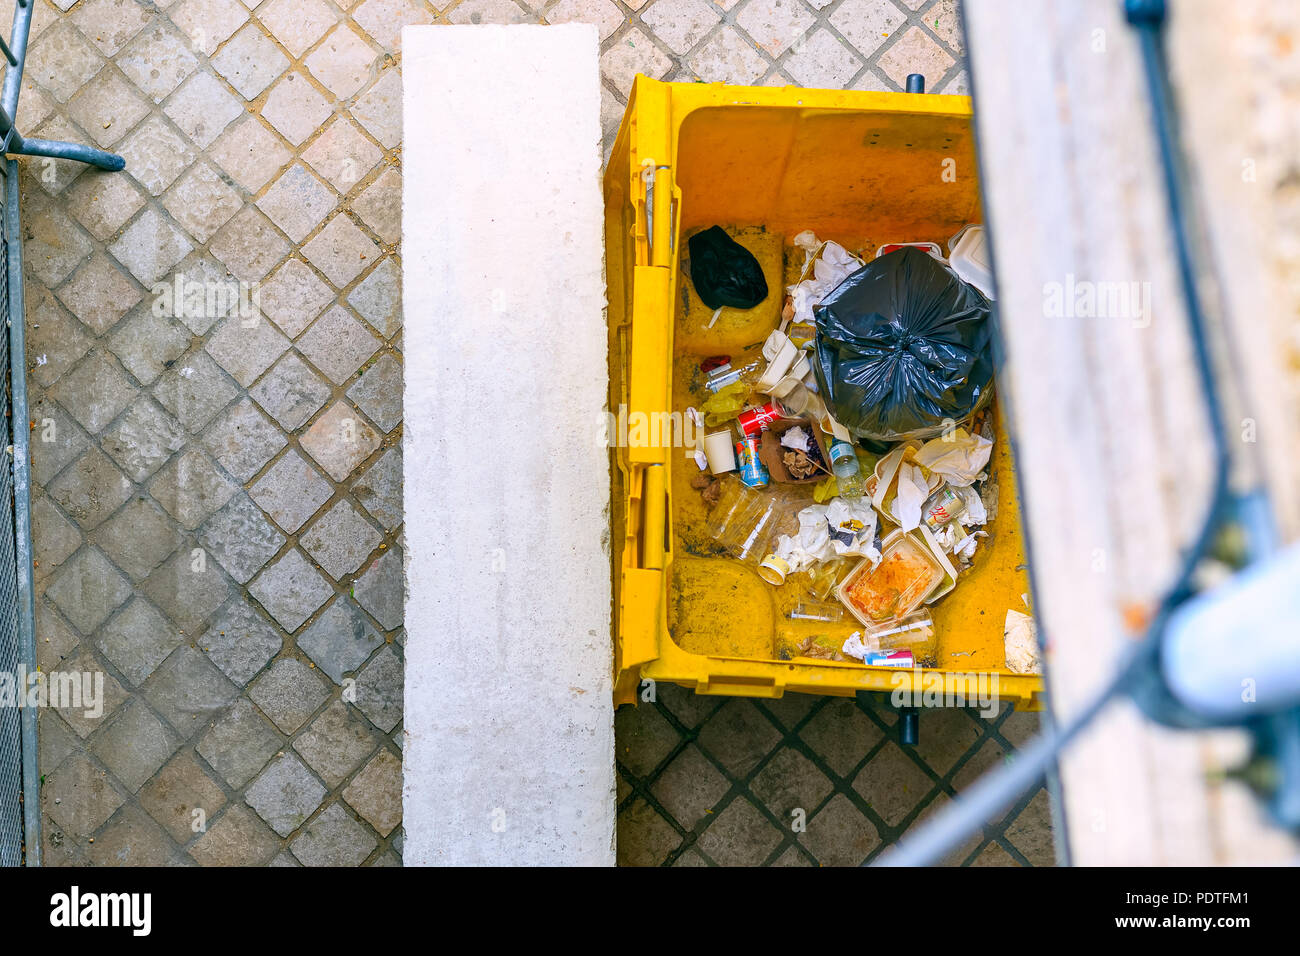 London, UK - August 7, 2018 - Top view of an open rubbish dumpster on street around Southbank Stock Photo